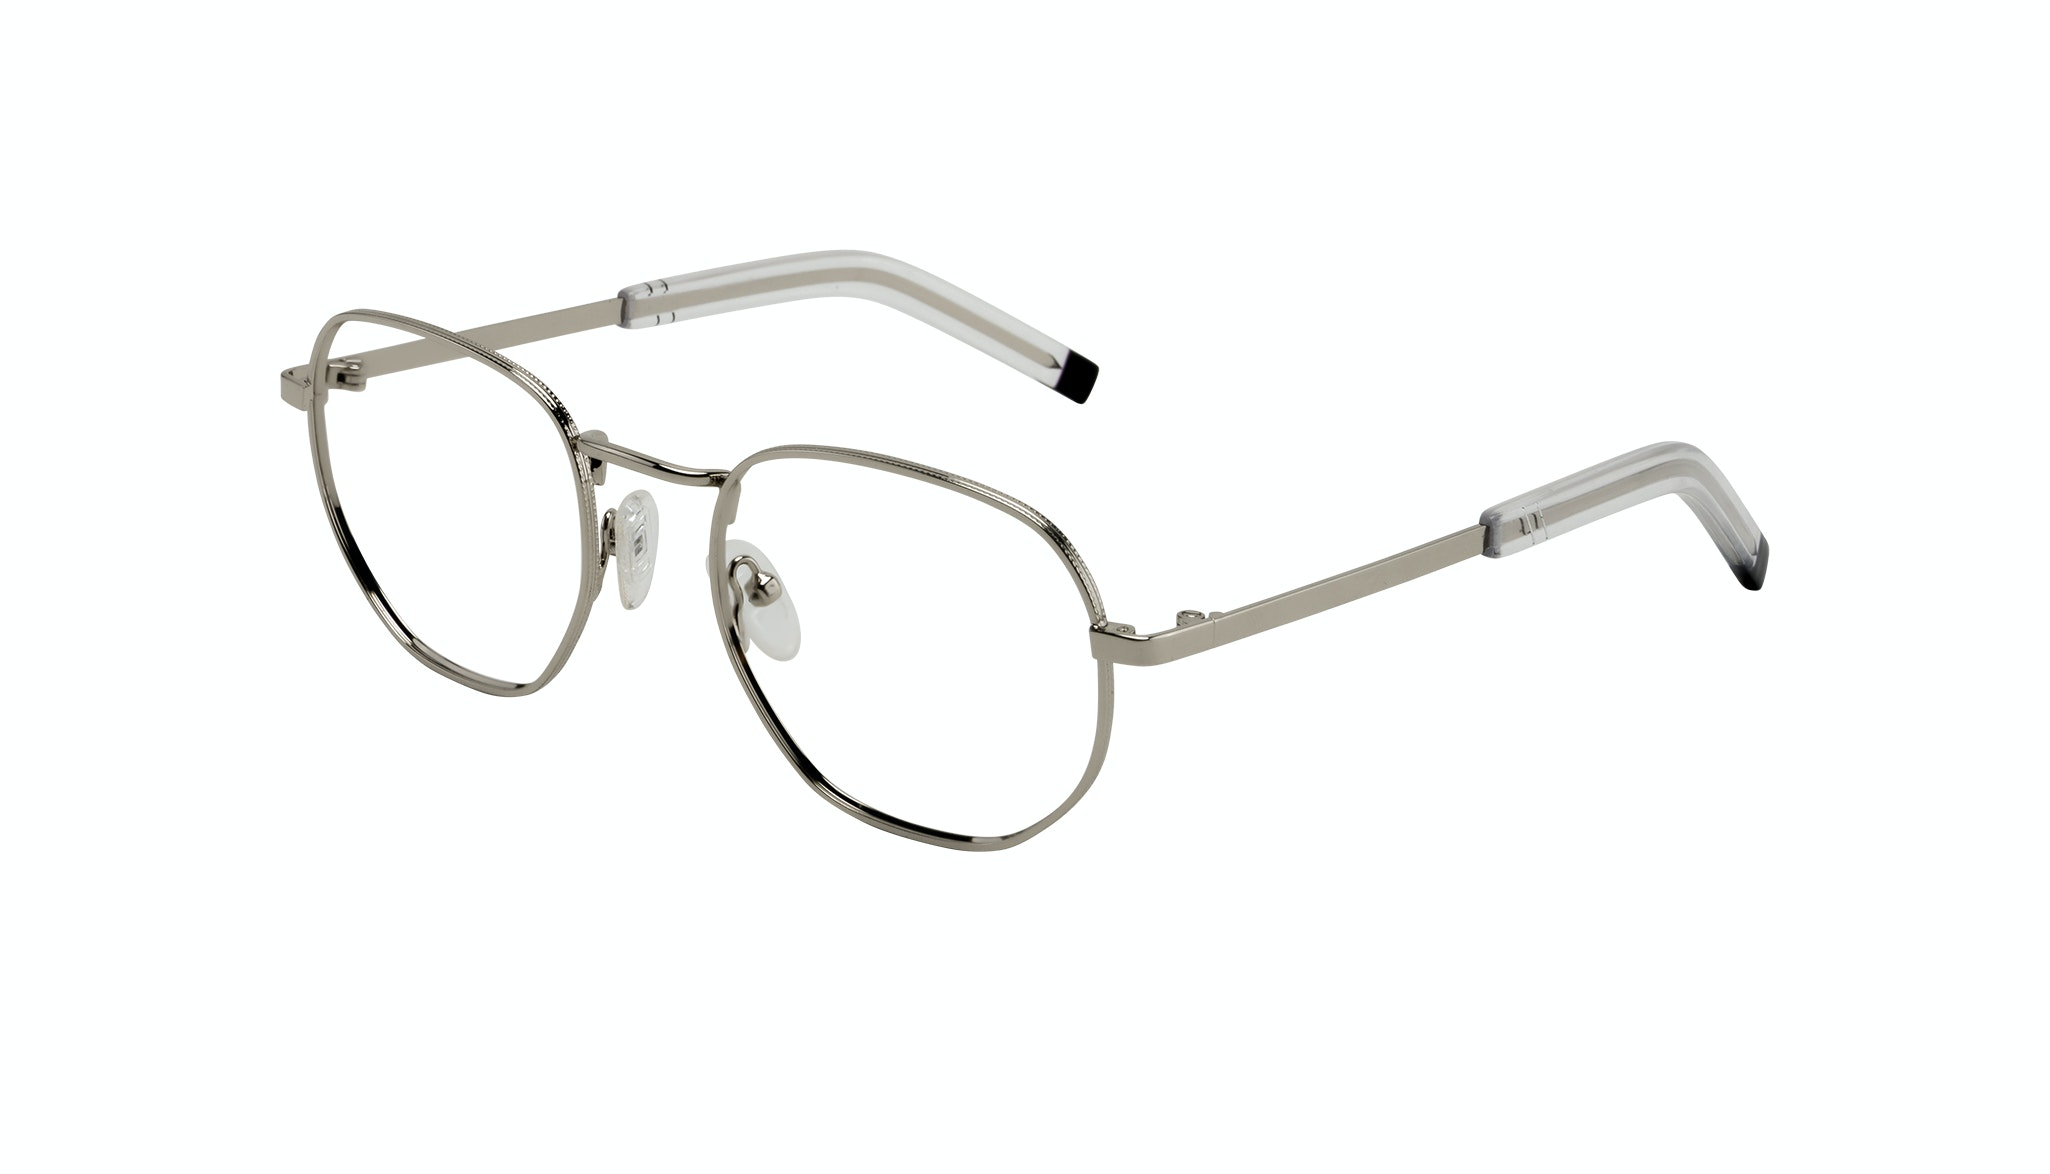 Affordable Fashion Glasses Round Eyeglasses Men Rise Silver Tilt